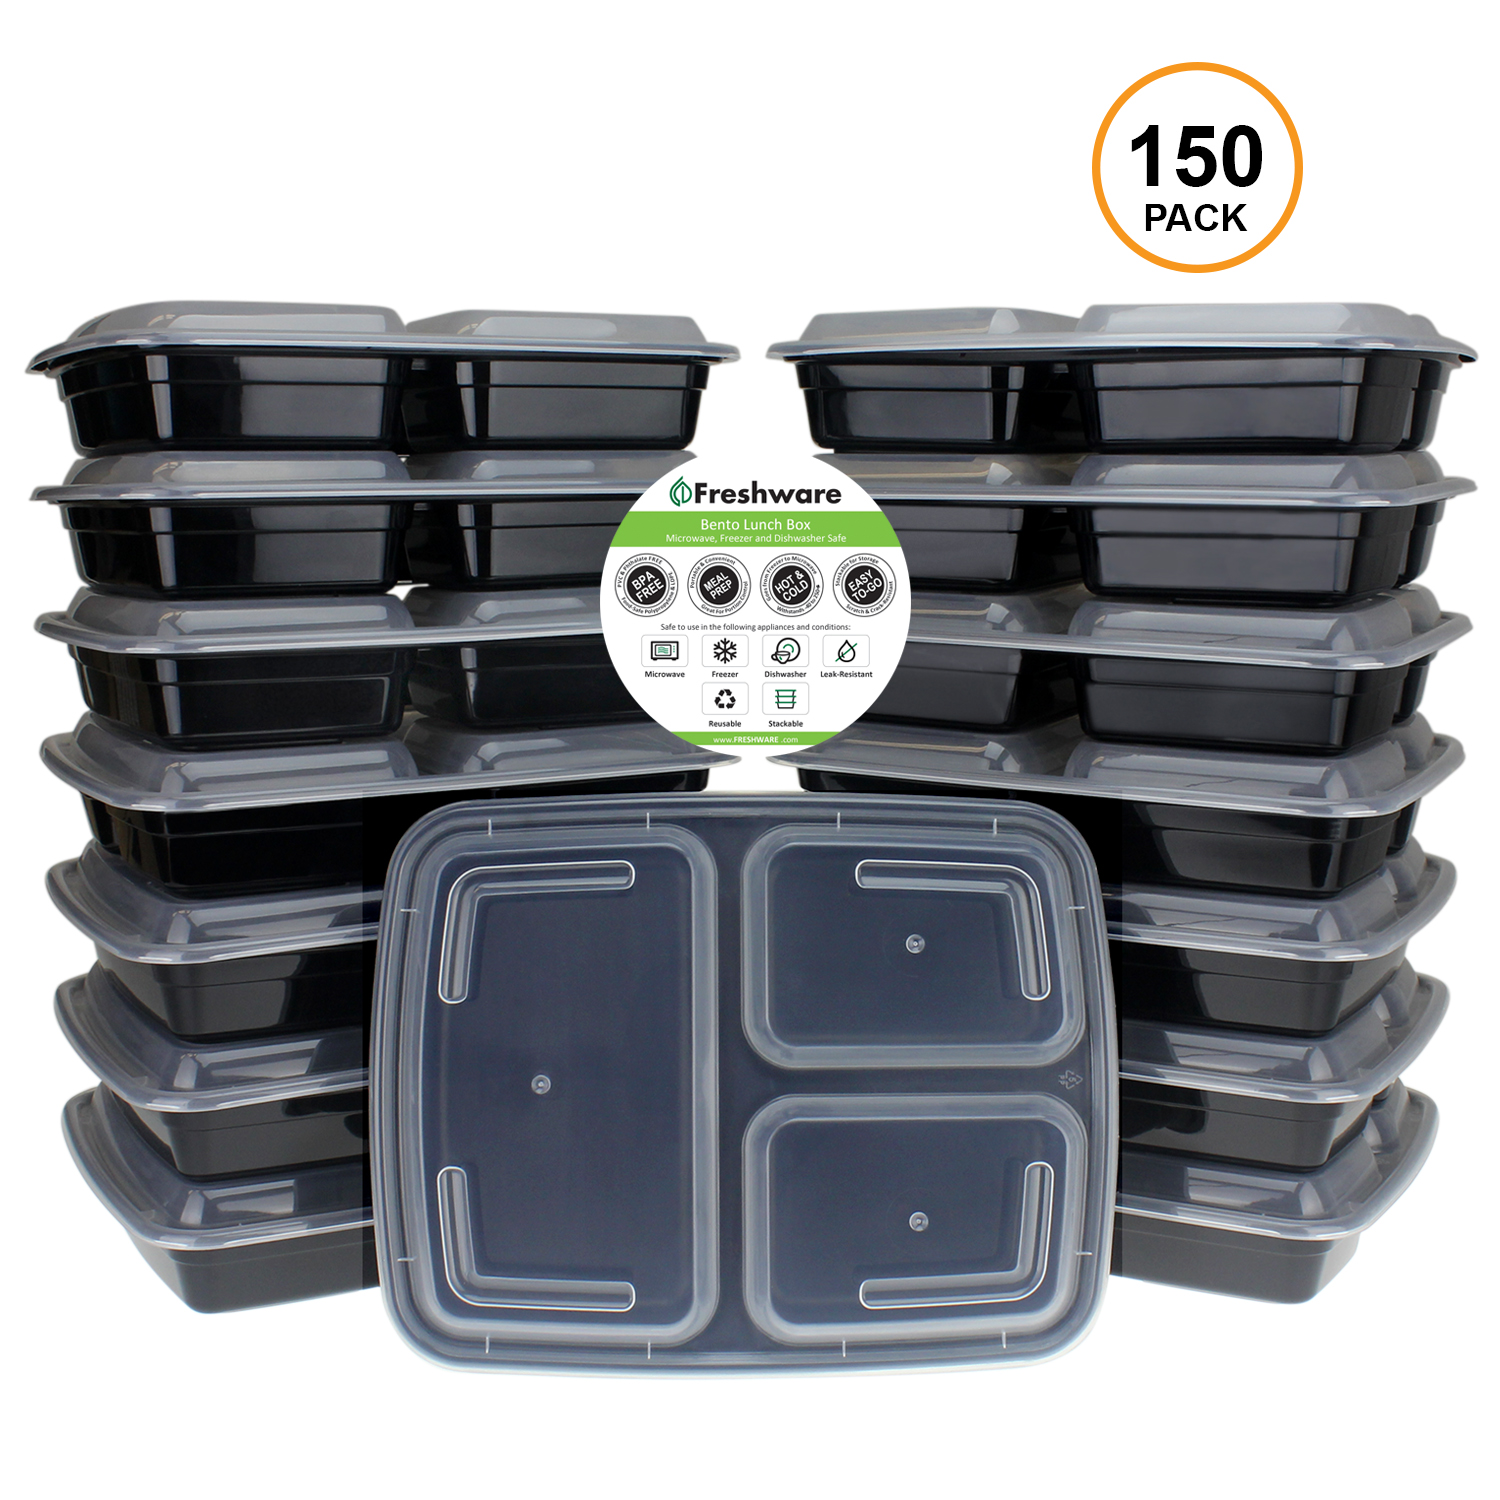 Freshware 150-Pack 3 Compartment Bento Lunch Boxes with Lids - Stackable Reusable Microwave Dishwasher & Freezer Safe - Meal Prep Portion Control 21 Day Fix & Food Storage Containers (32oz), YH-3X150